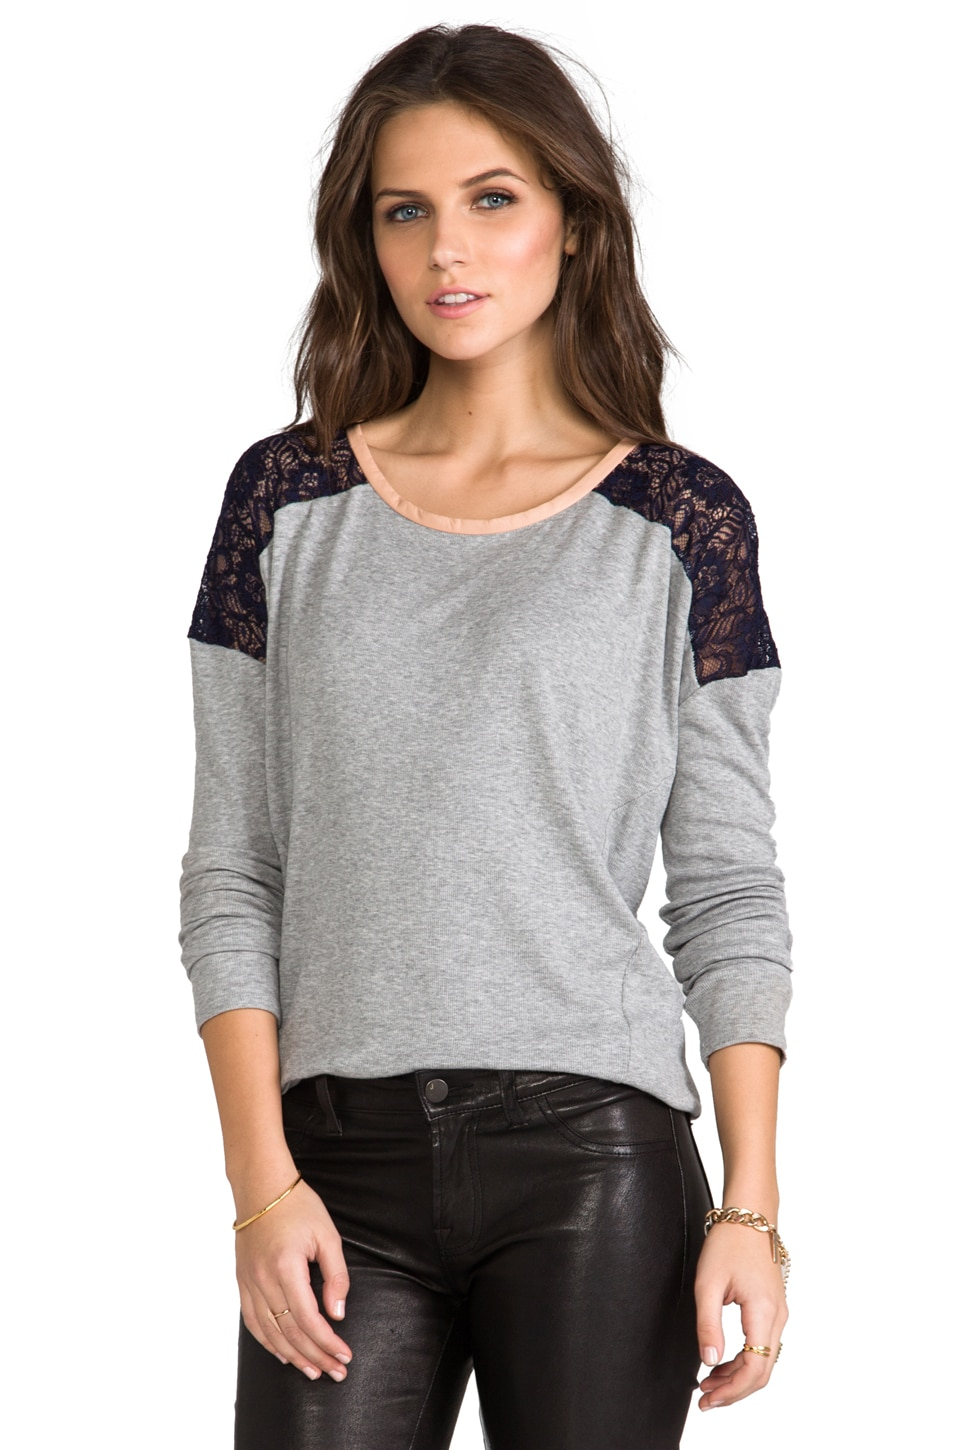 Heather Lace Shoulder Top in Light Heather Grey